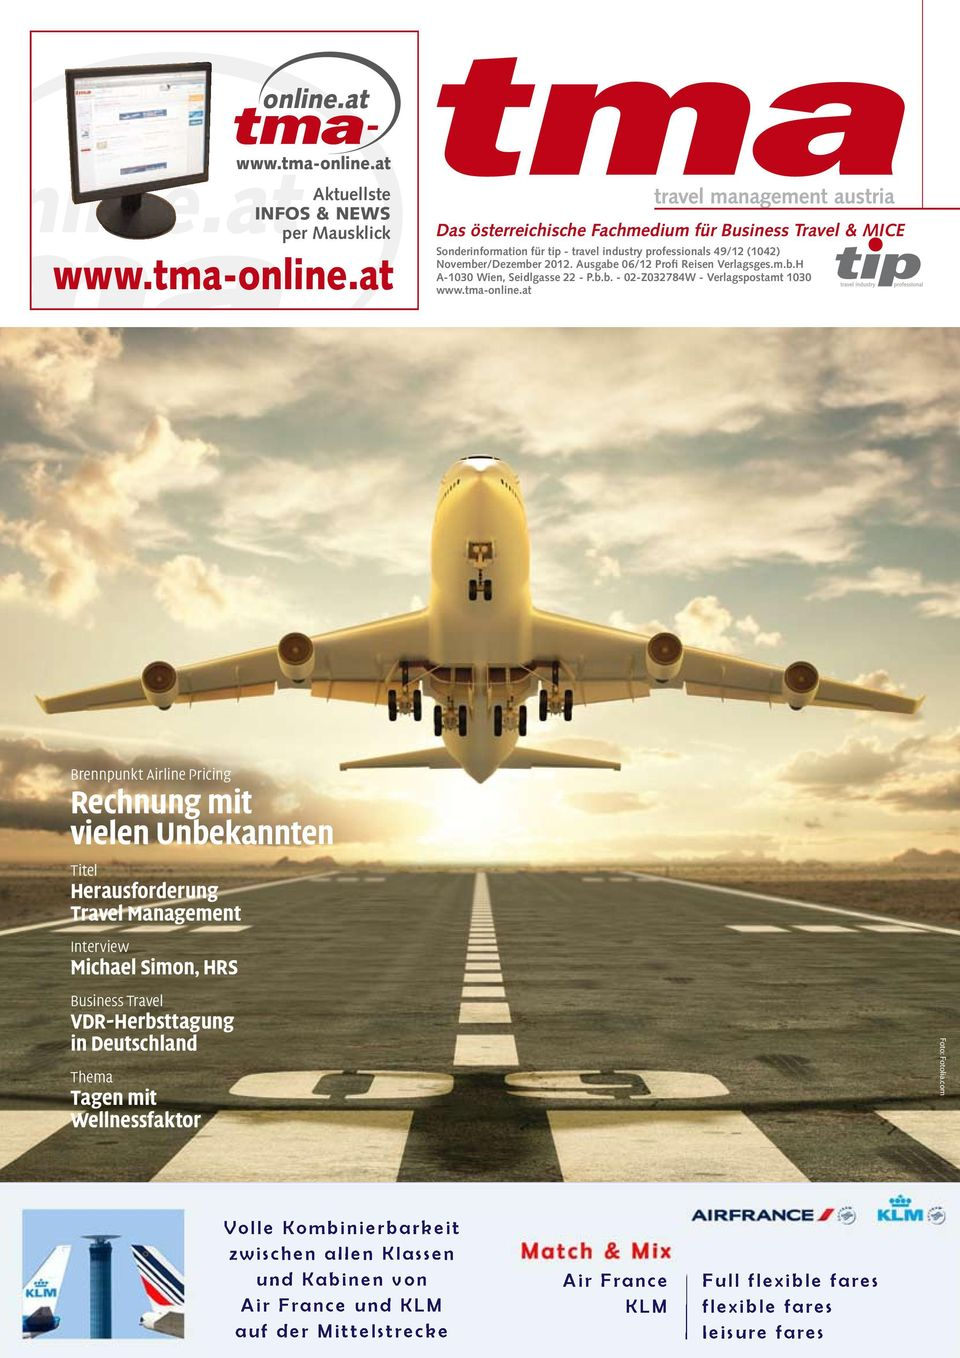 at Brennpunkt Airline Pricing Rechnung mit vielen Unbekannten Titel Herausforderung Travel Management Interview Michael Simon, HRS Business Travel VDR-Herbsttagung in Deutschland Thema Tagen